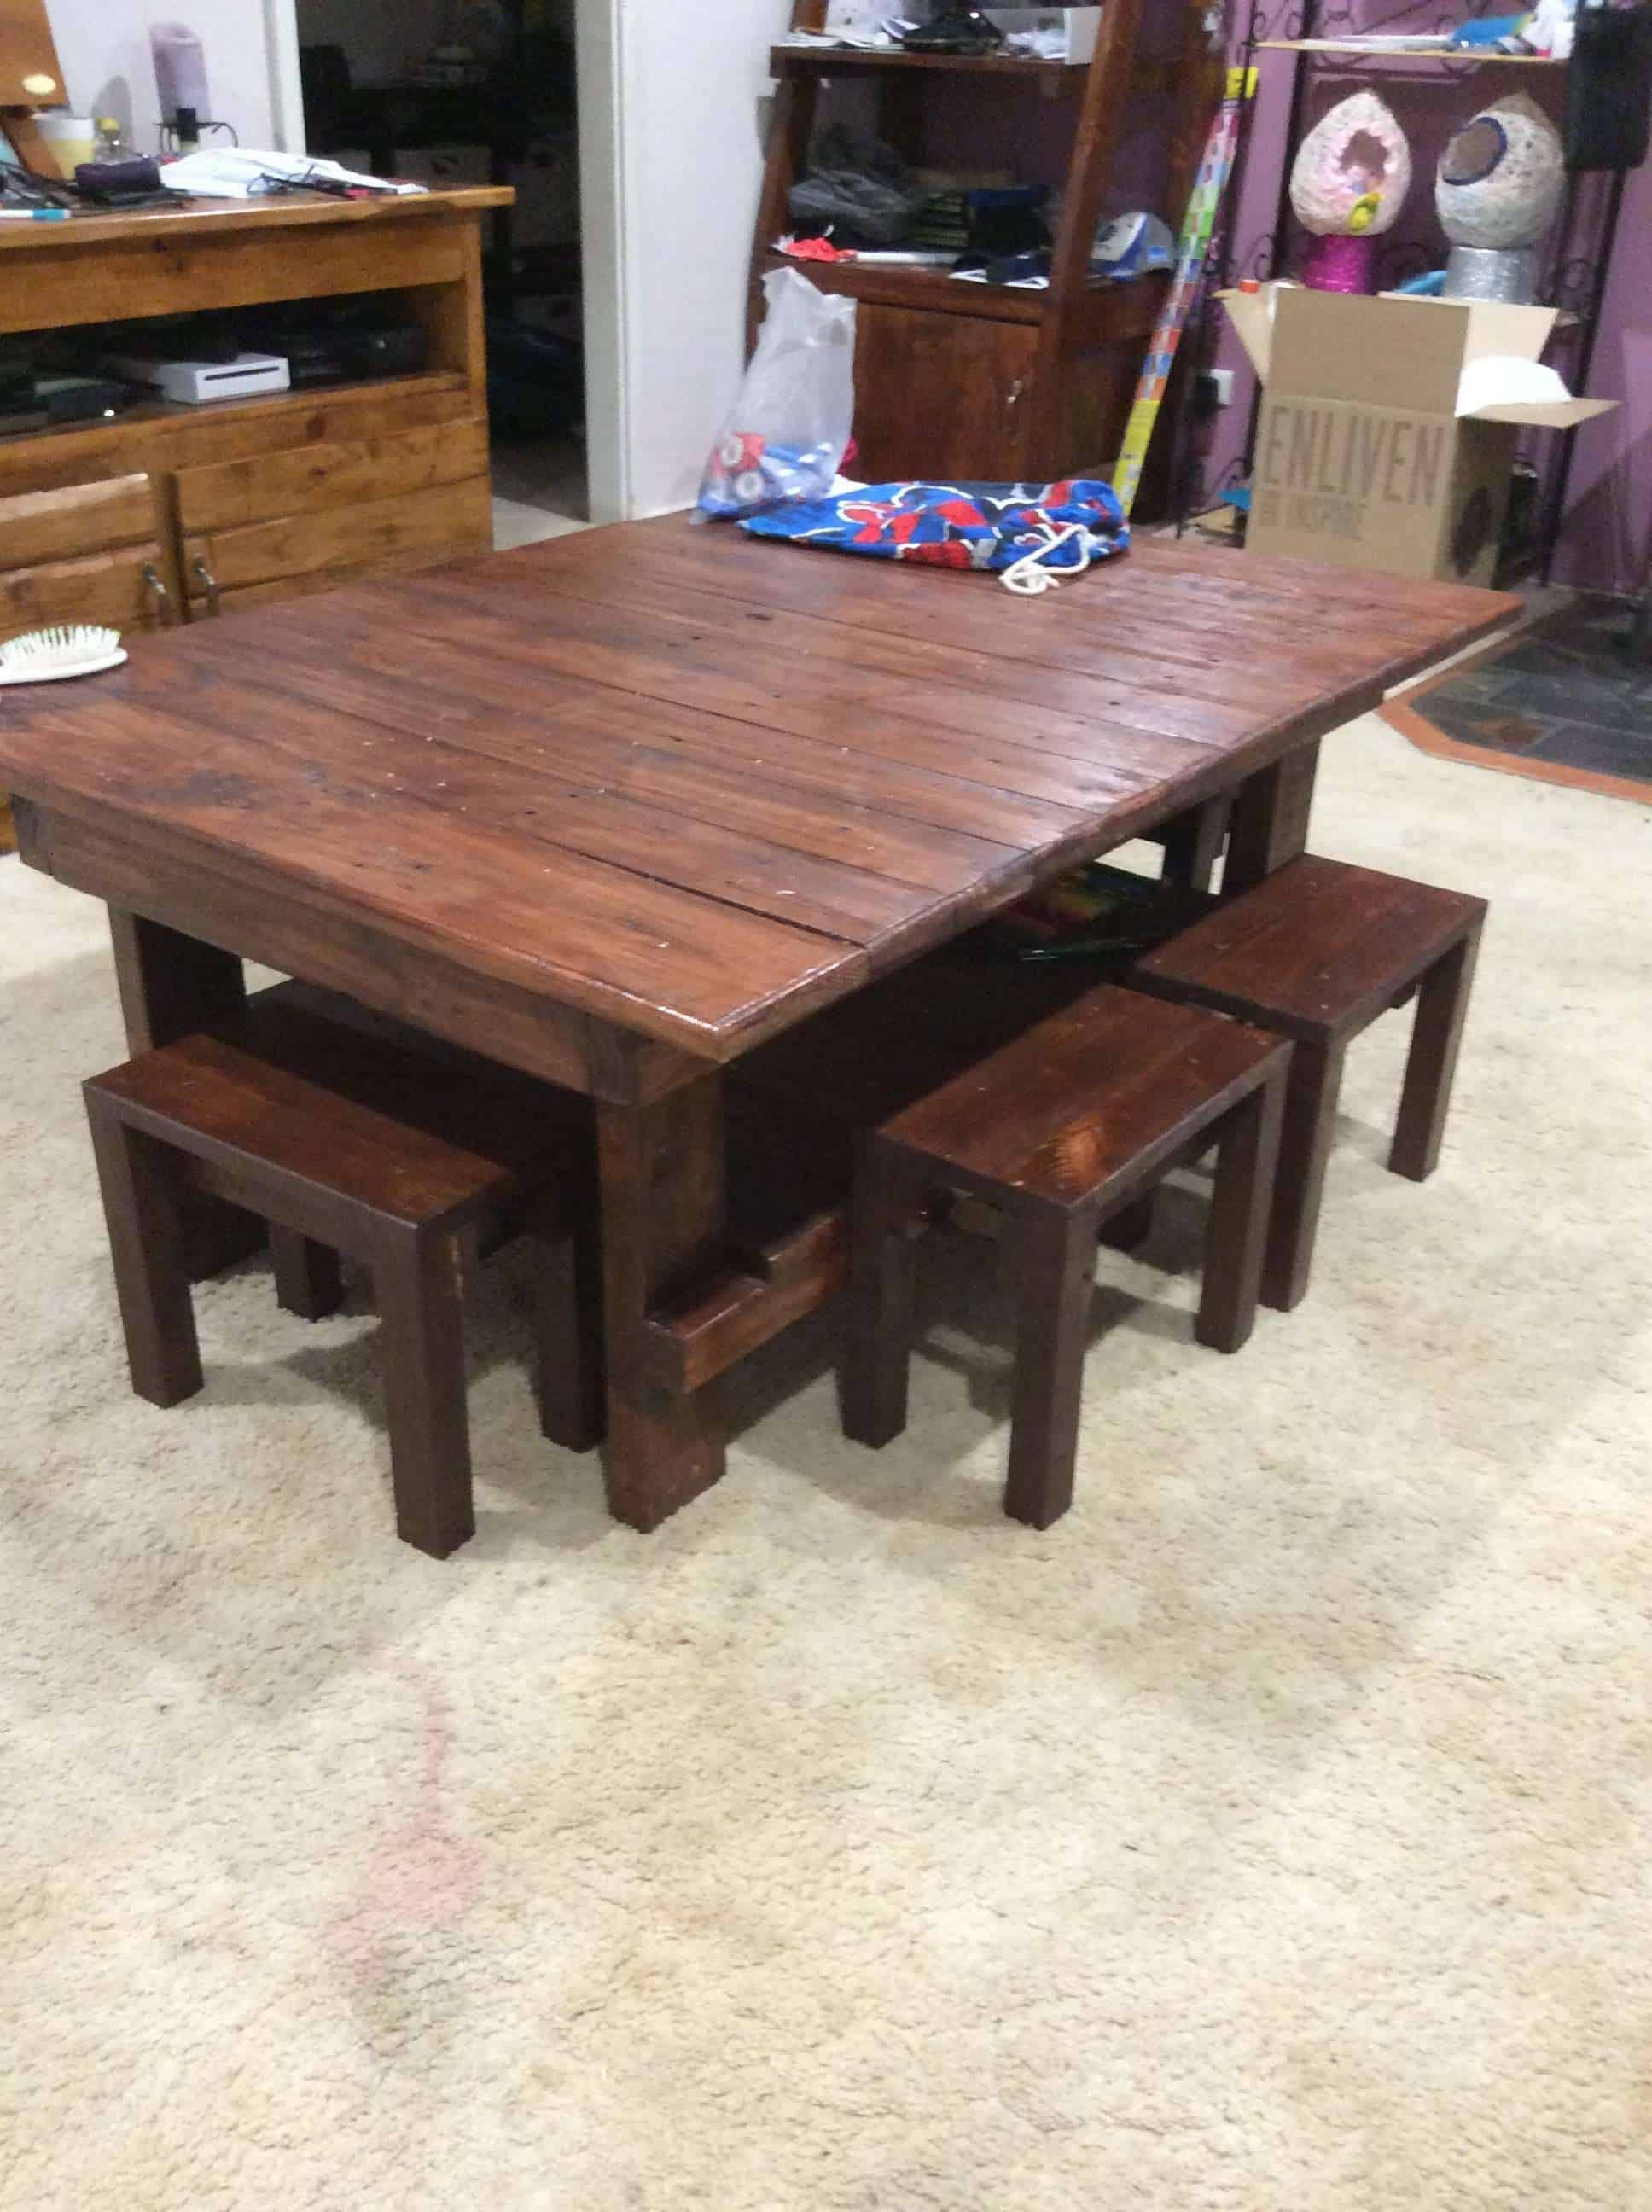 Coffee Table amp Chairs For The Kids 1001 Pallets